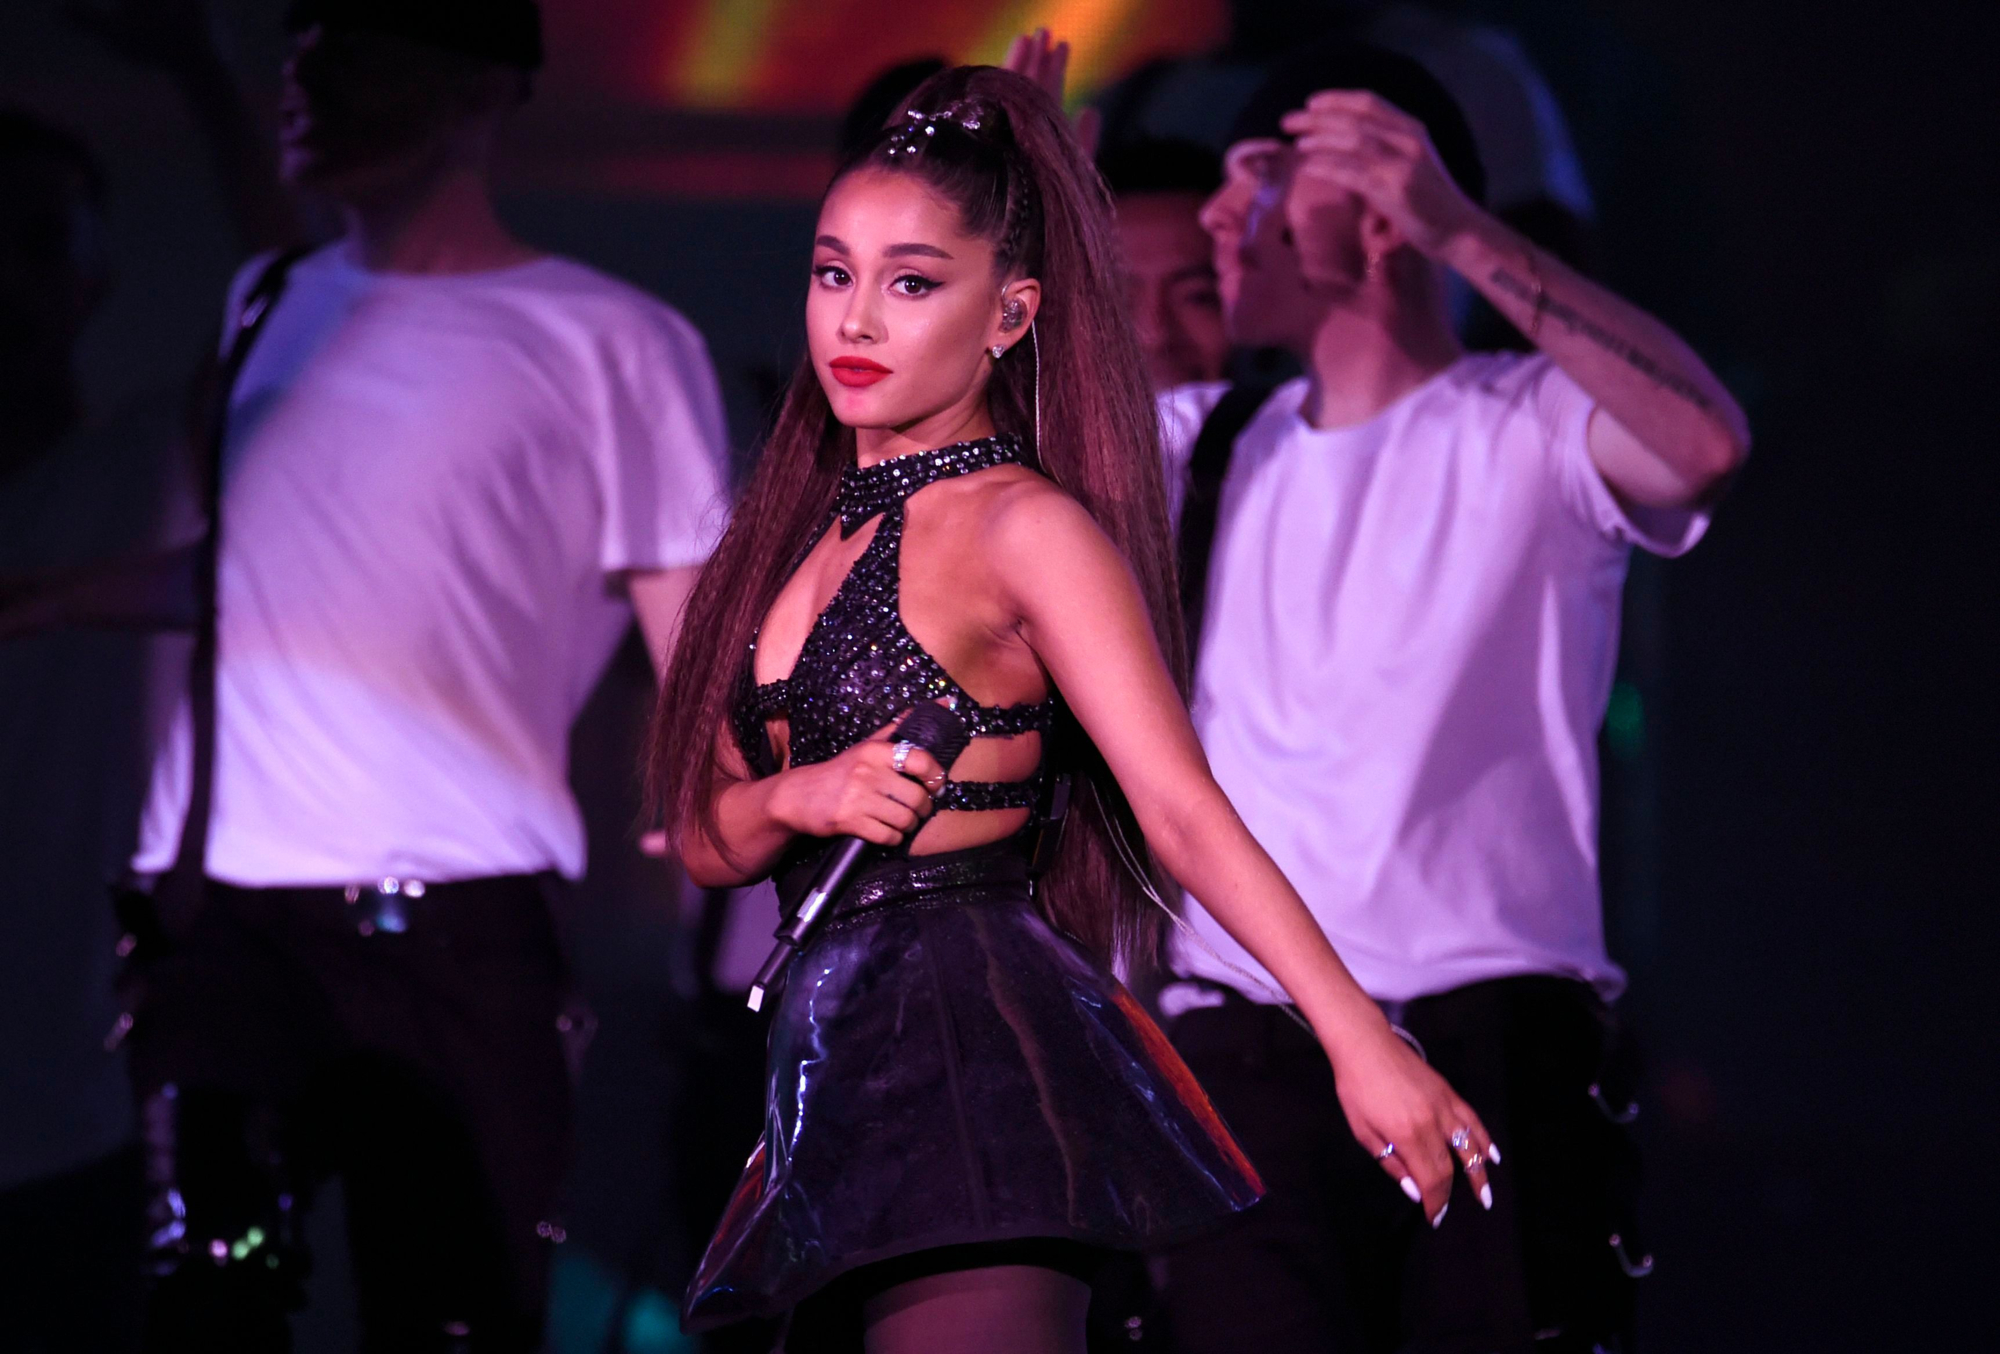 2018 Wango Tango - Show, Los Angeles, USA - 02 Jun 2018